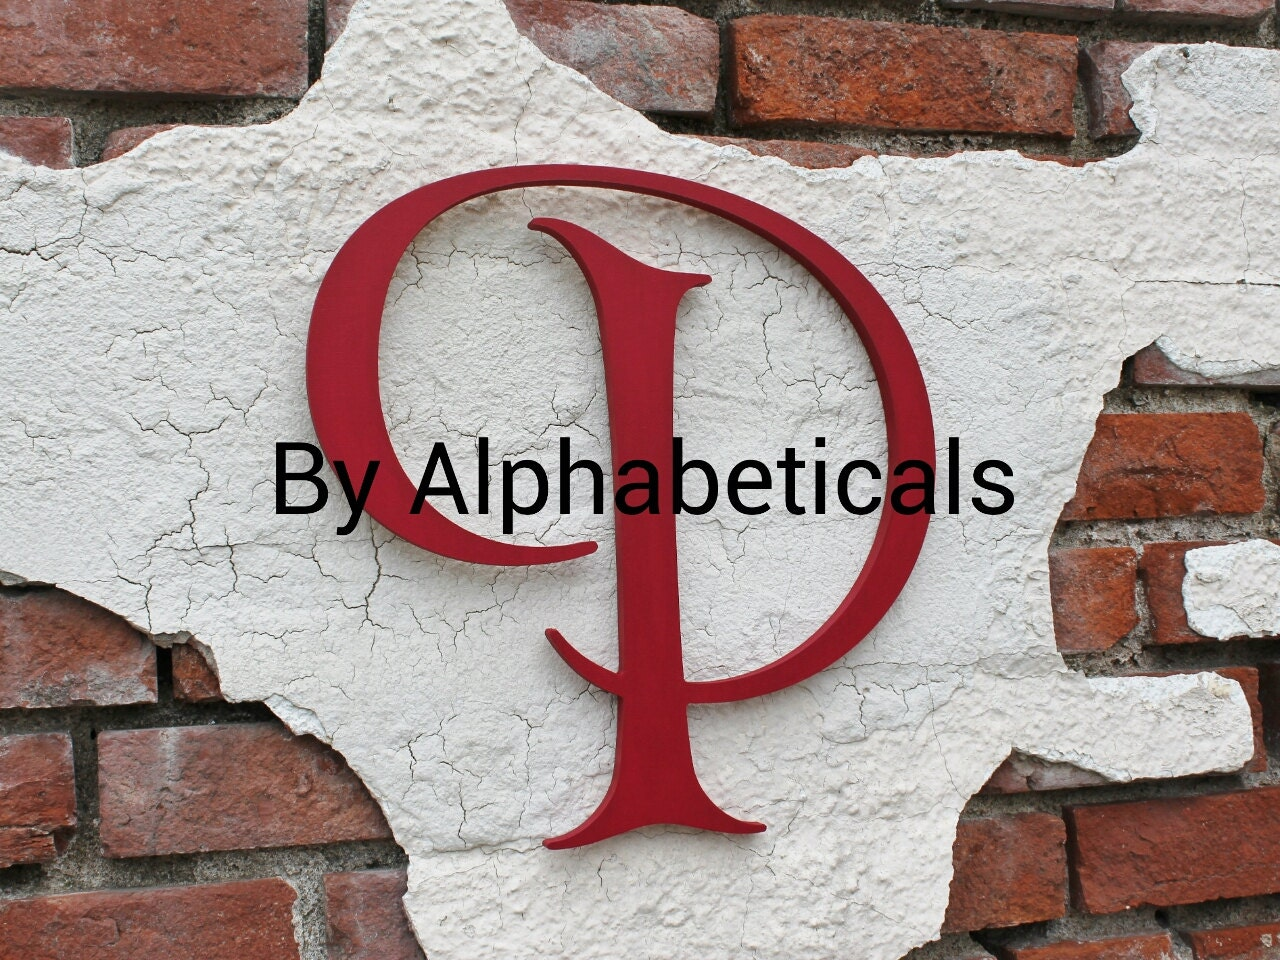 Wall decor wooden letters wall letters decorative by alphabeticals - Decorative wooden letters for walls ...